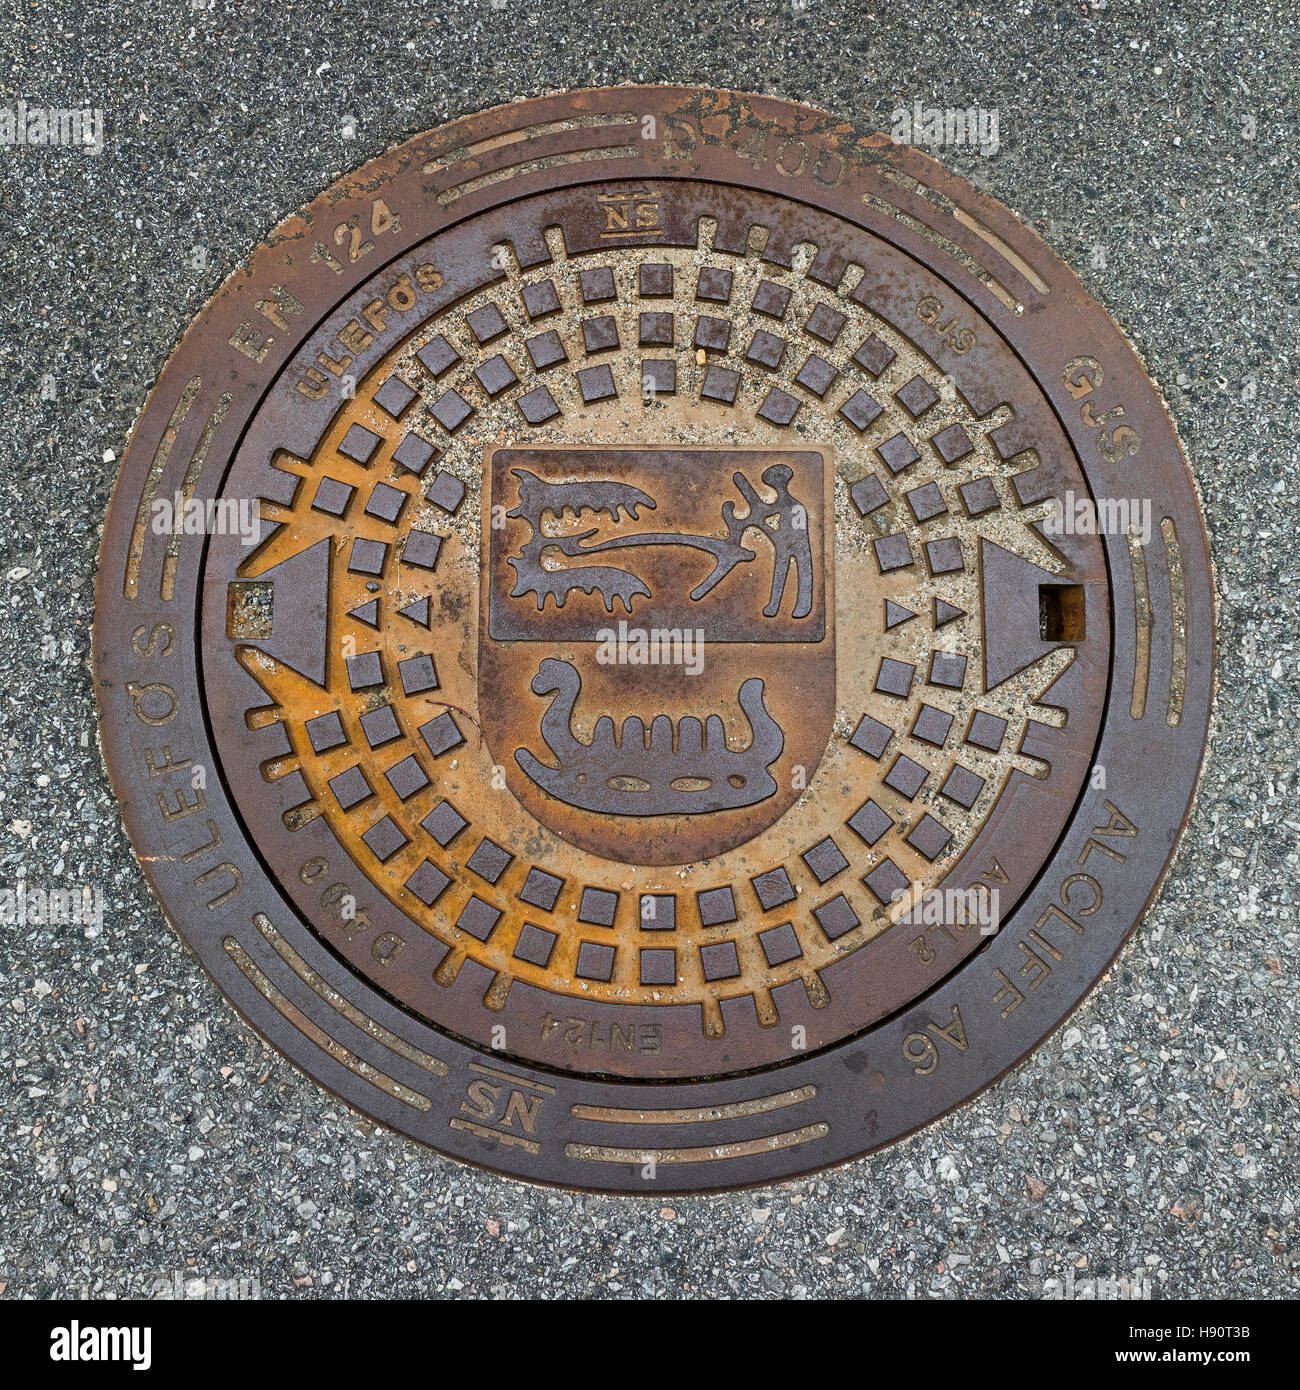 Manhole cover in the Tanum world heritage center, Sweden - Stock Image